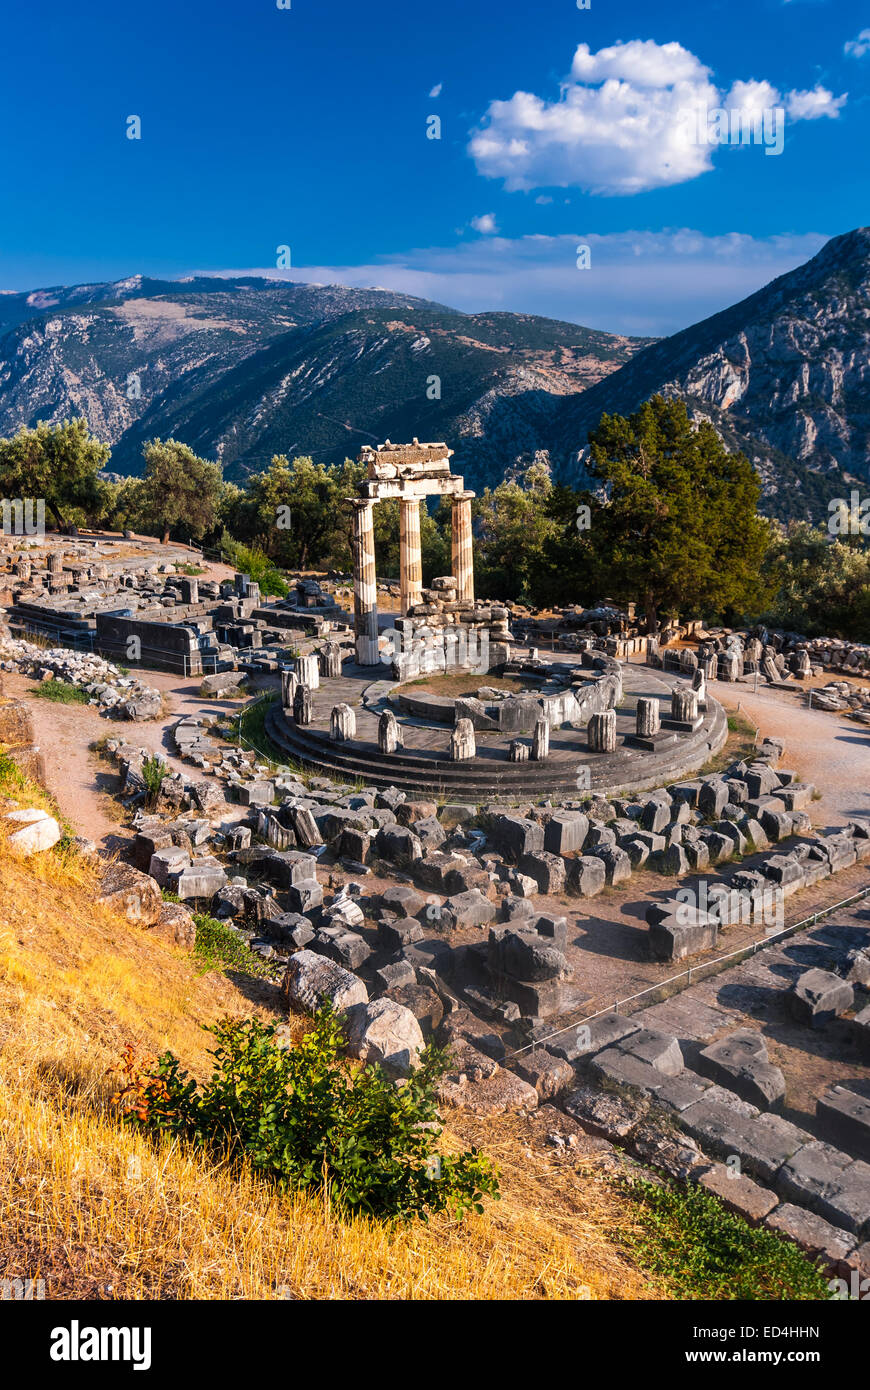 Delphi, Greece. Tholos temple, sanctuary of Athena Pronaia, constructed in 360 BC. Ancient Greek civilization. Stock Photo